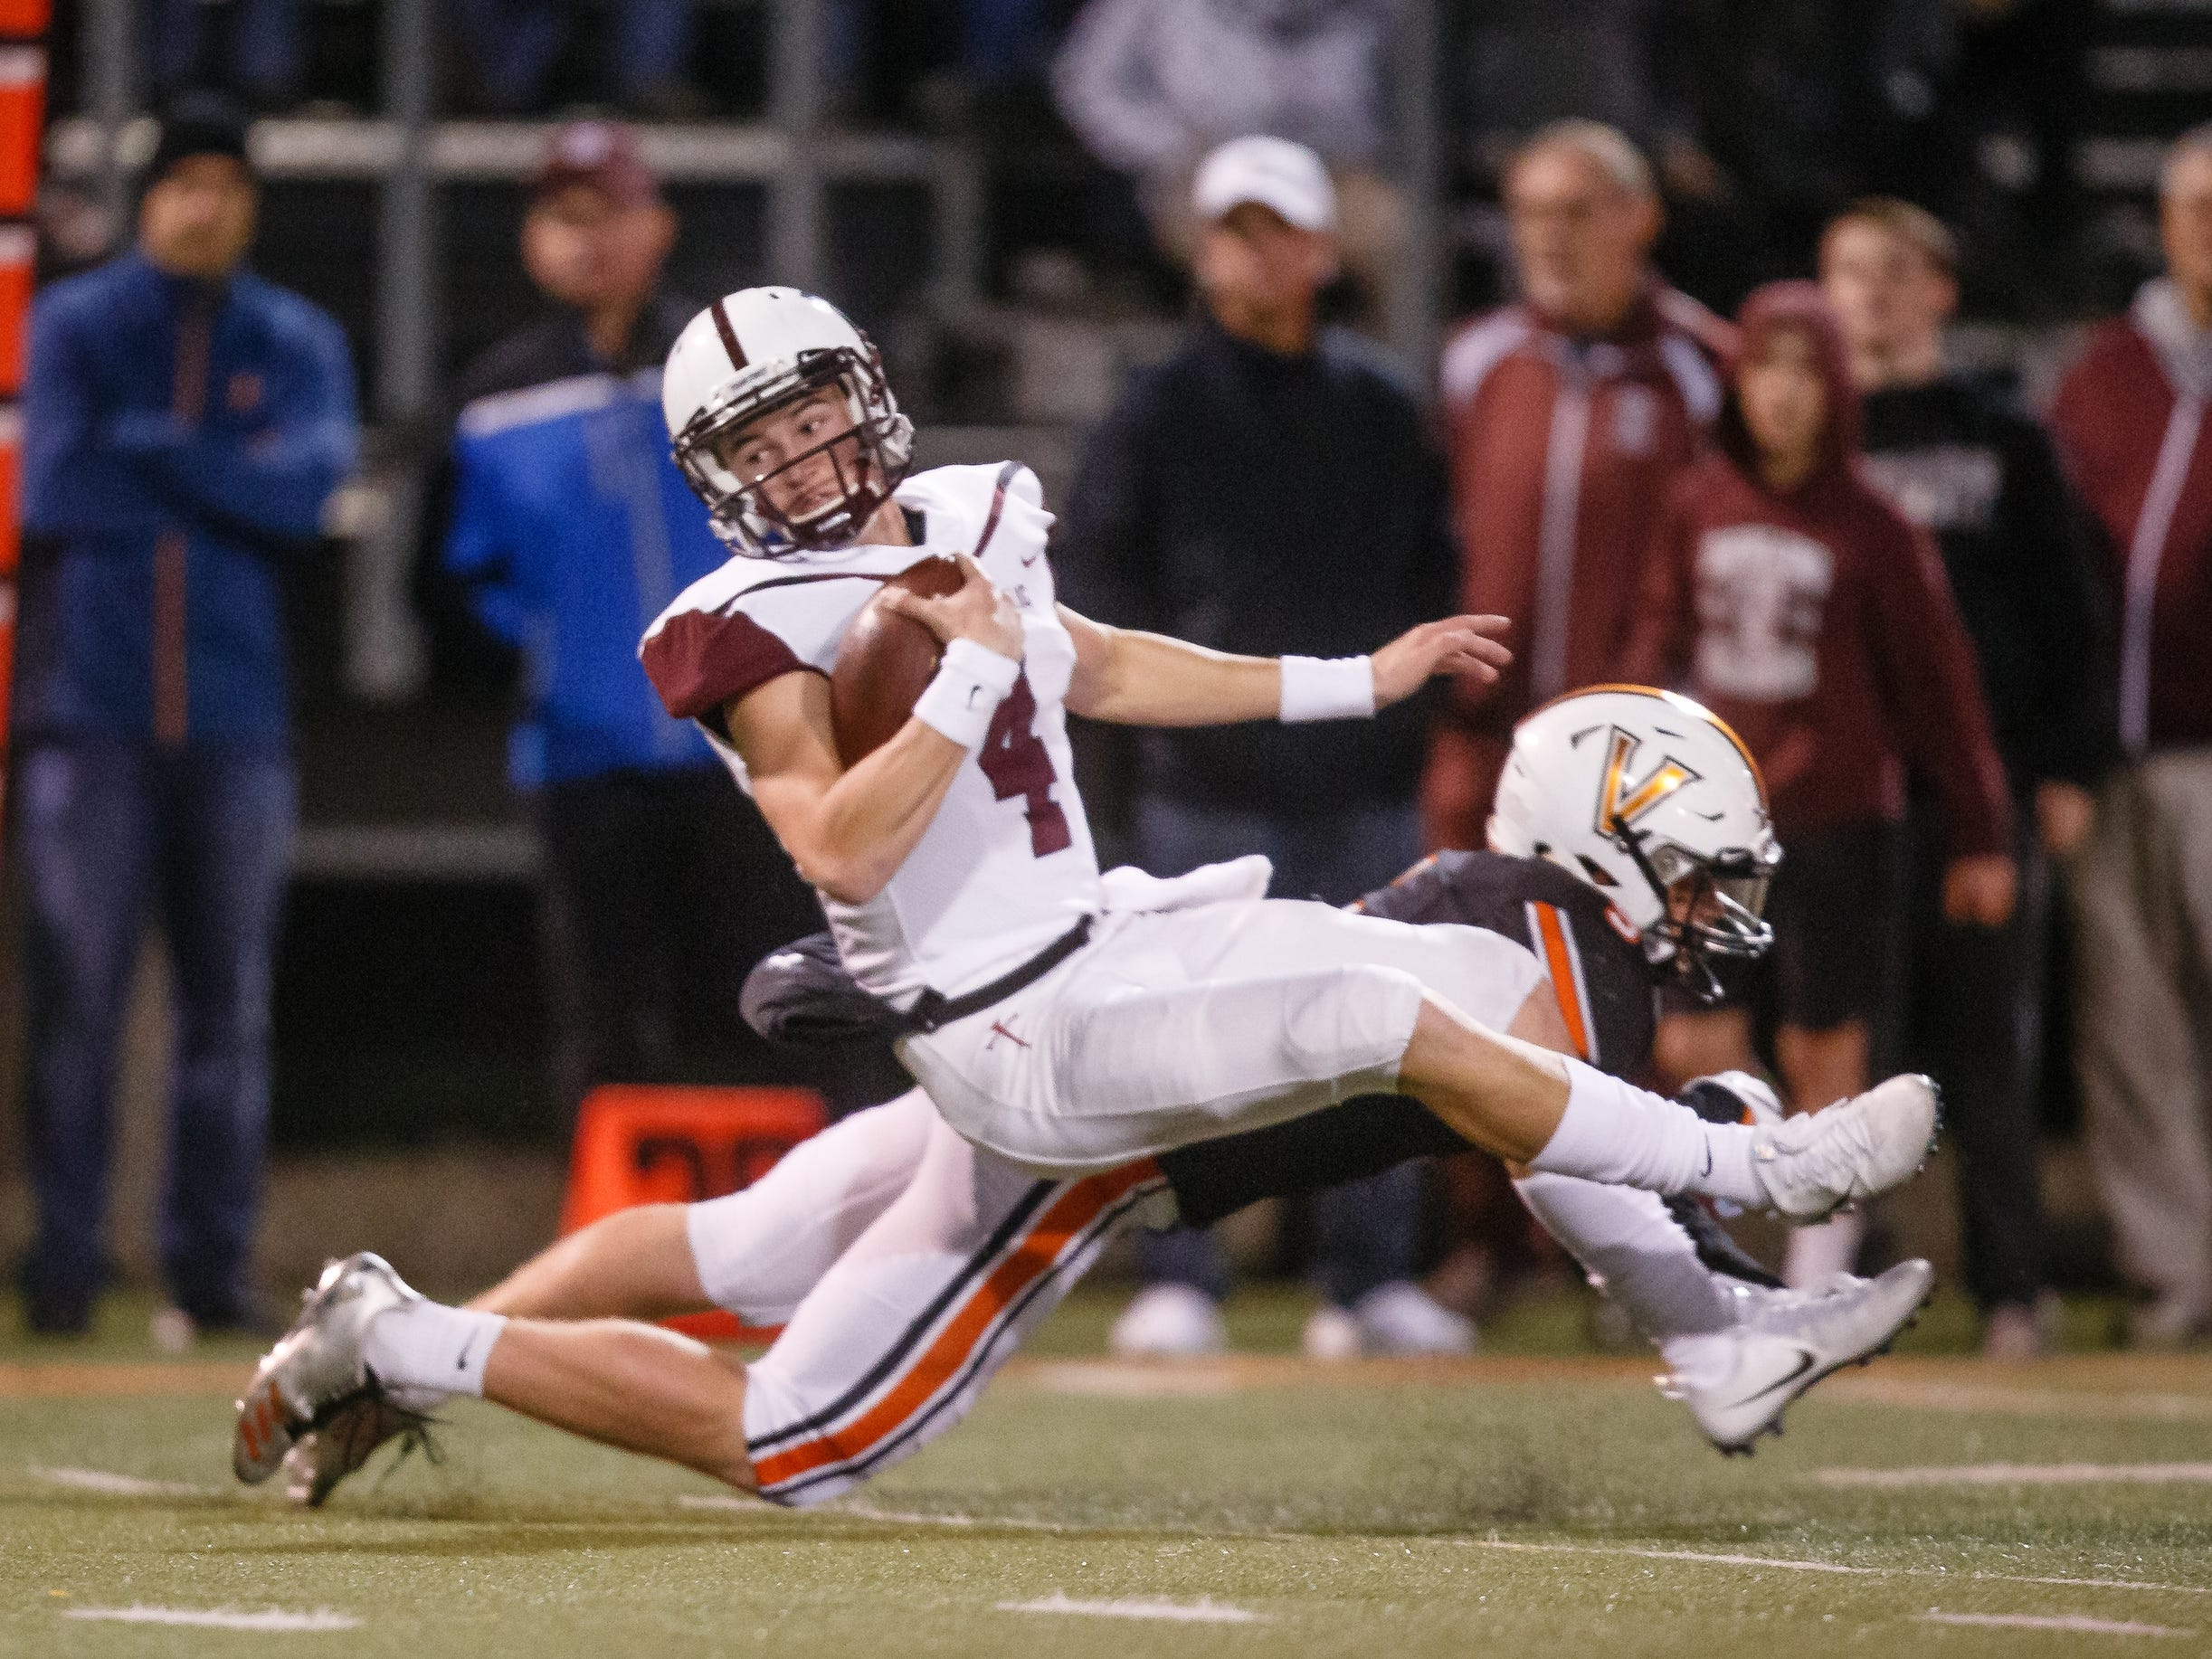 Dowling Catholic's Zach Watters (4) is tackled during their football playoff game against Valley on Friday, Nov. 2, 2018, in West Des Moines. Dowling takes a 17-06 lead into halftime.